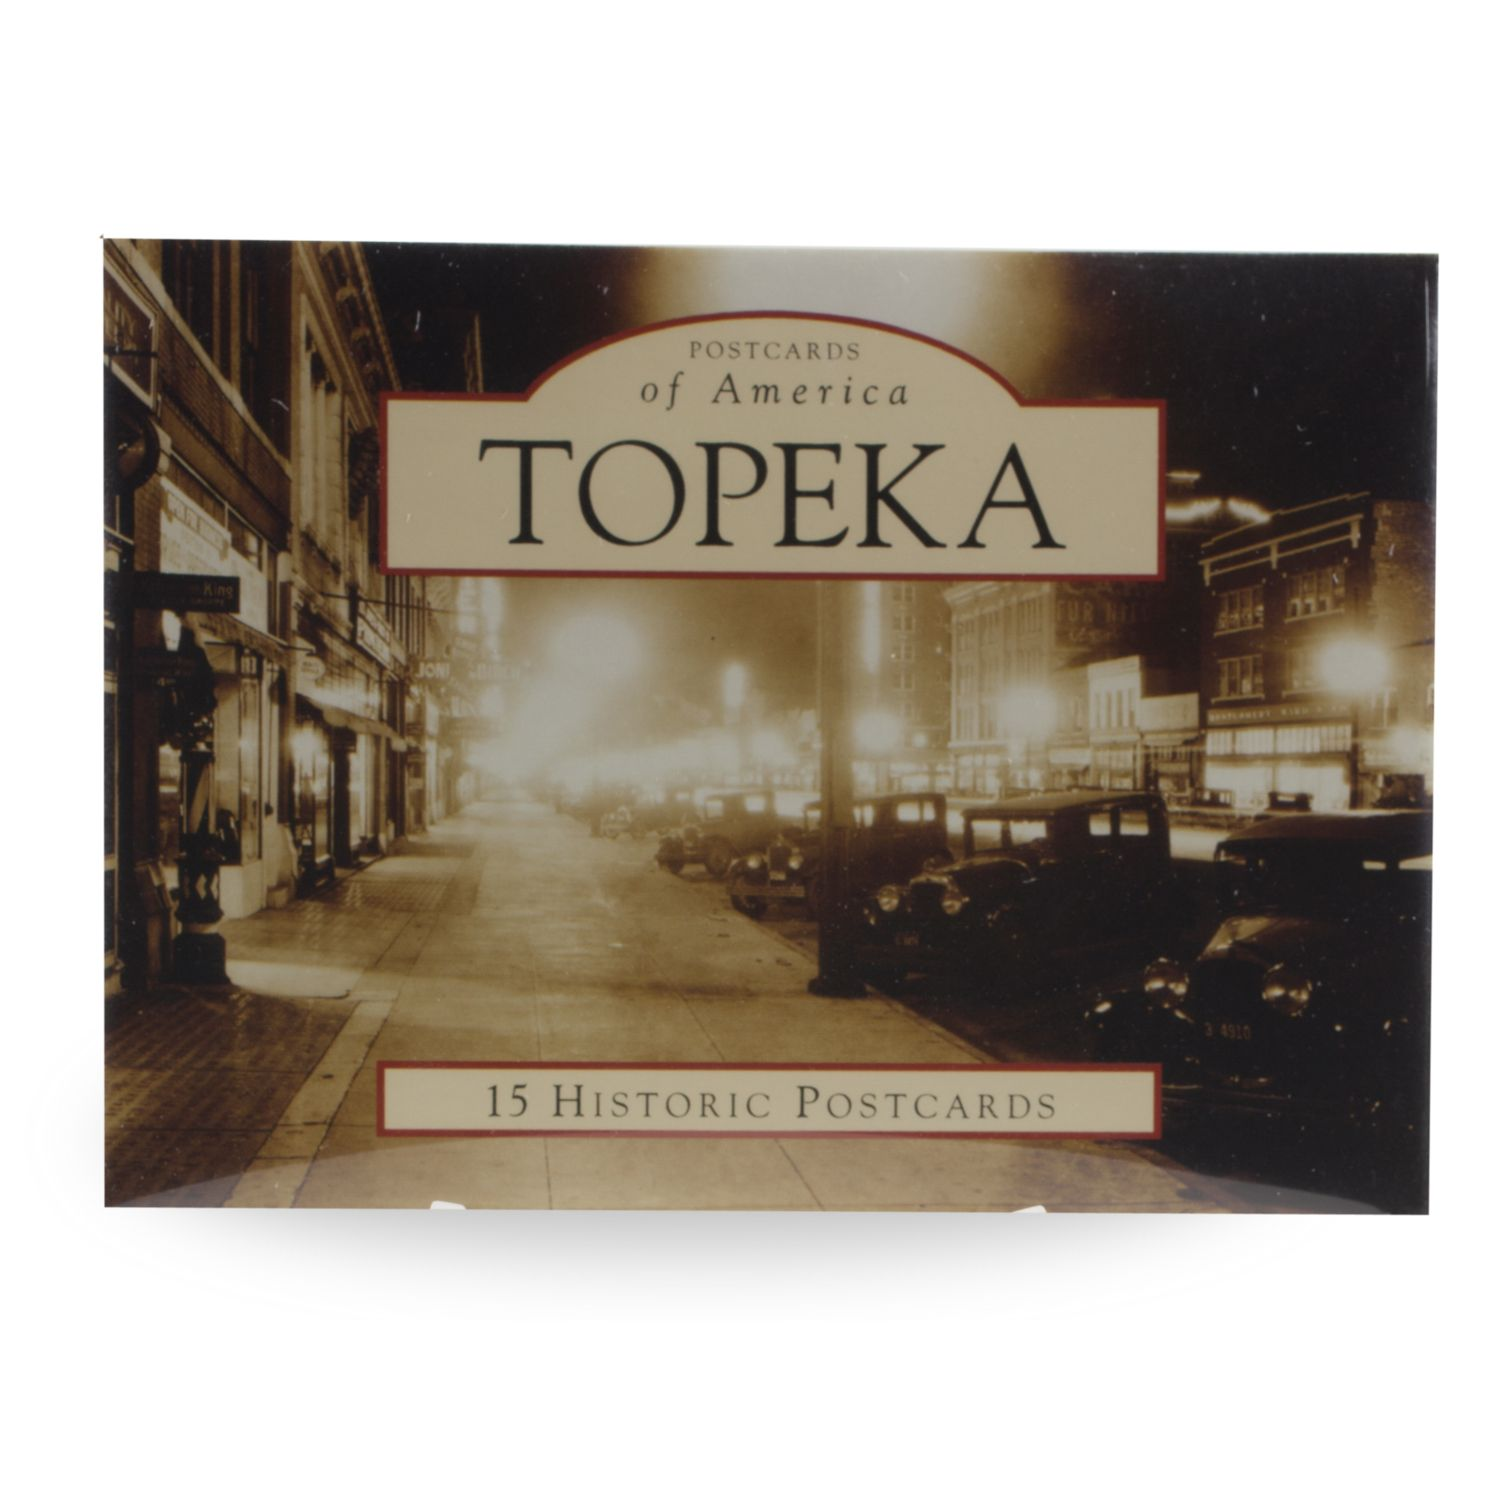 Topeka 15 Historic Postcards,AA-18-D2